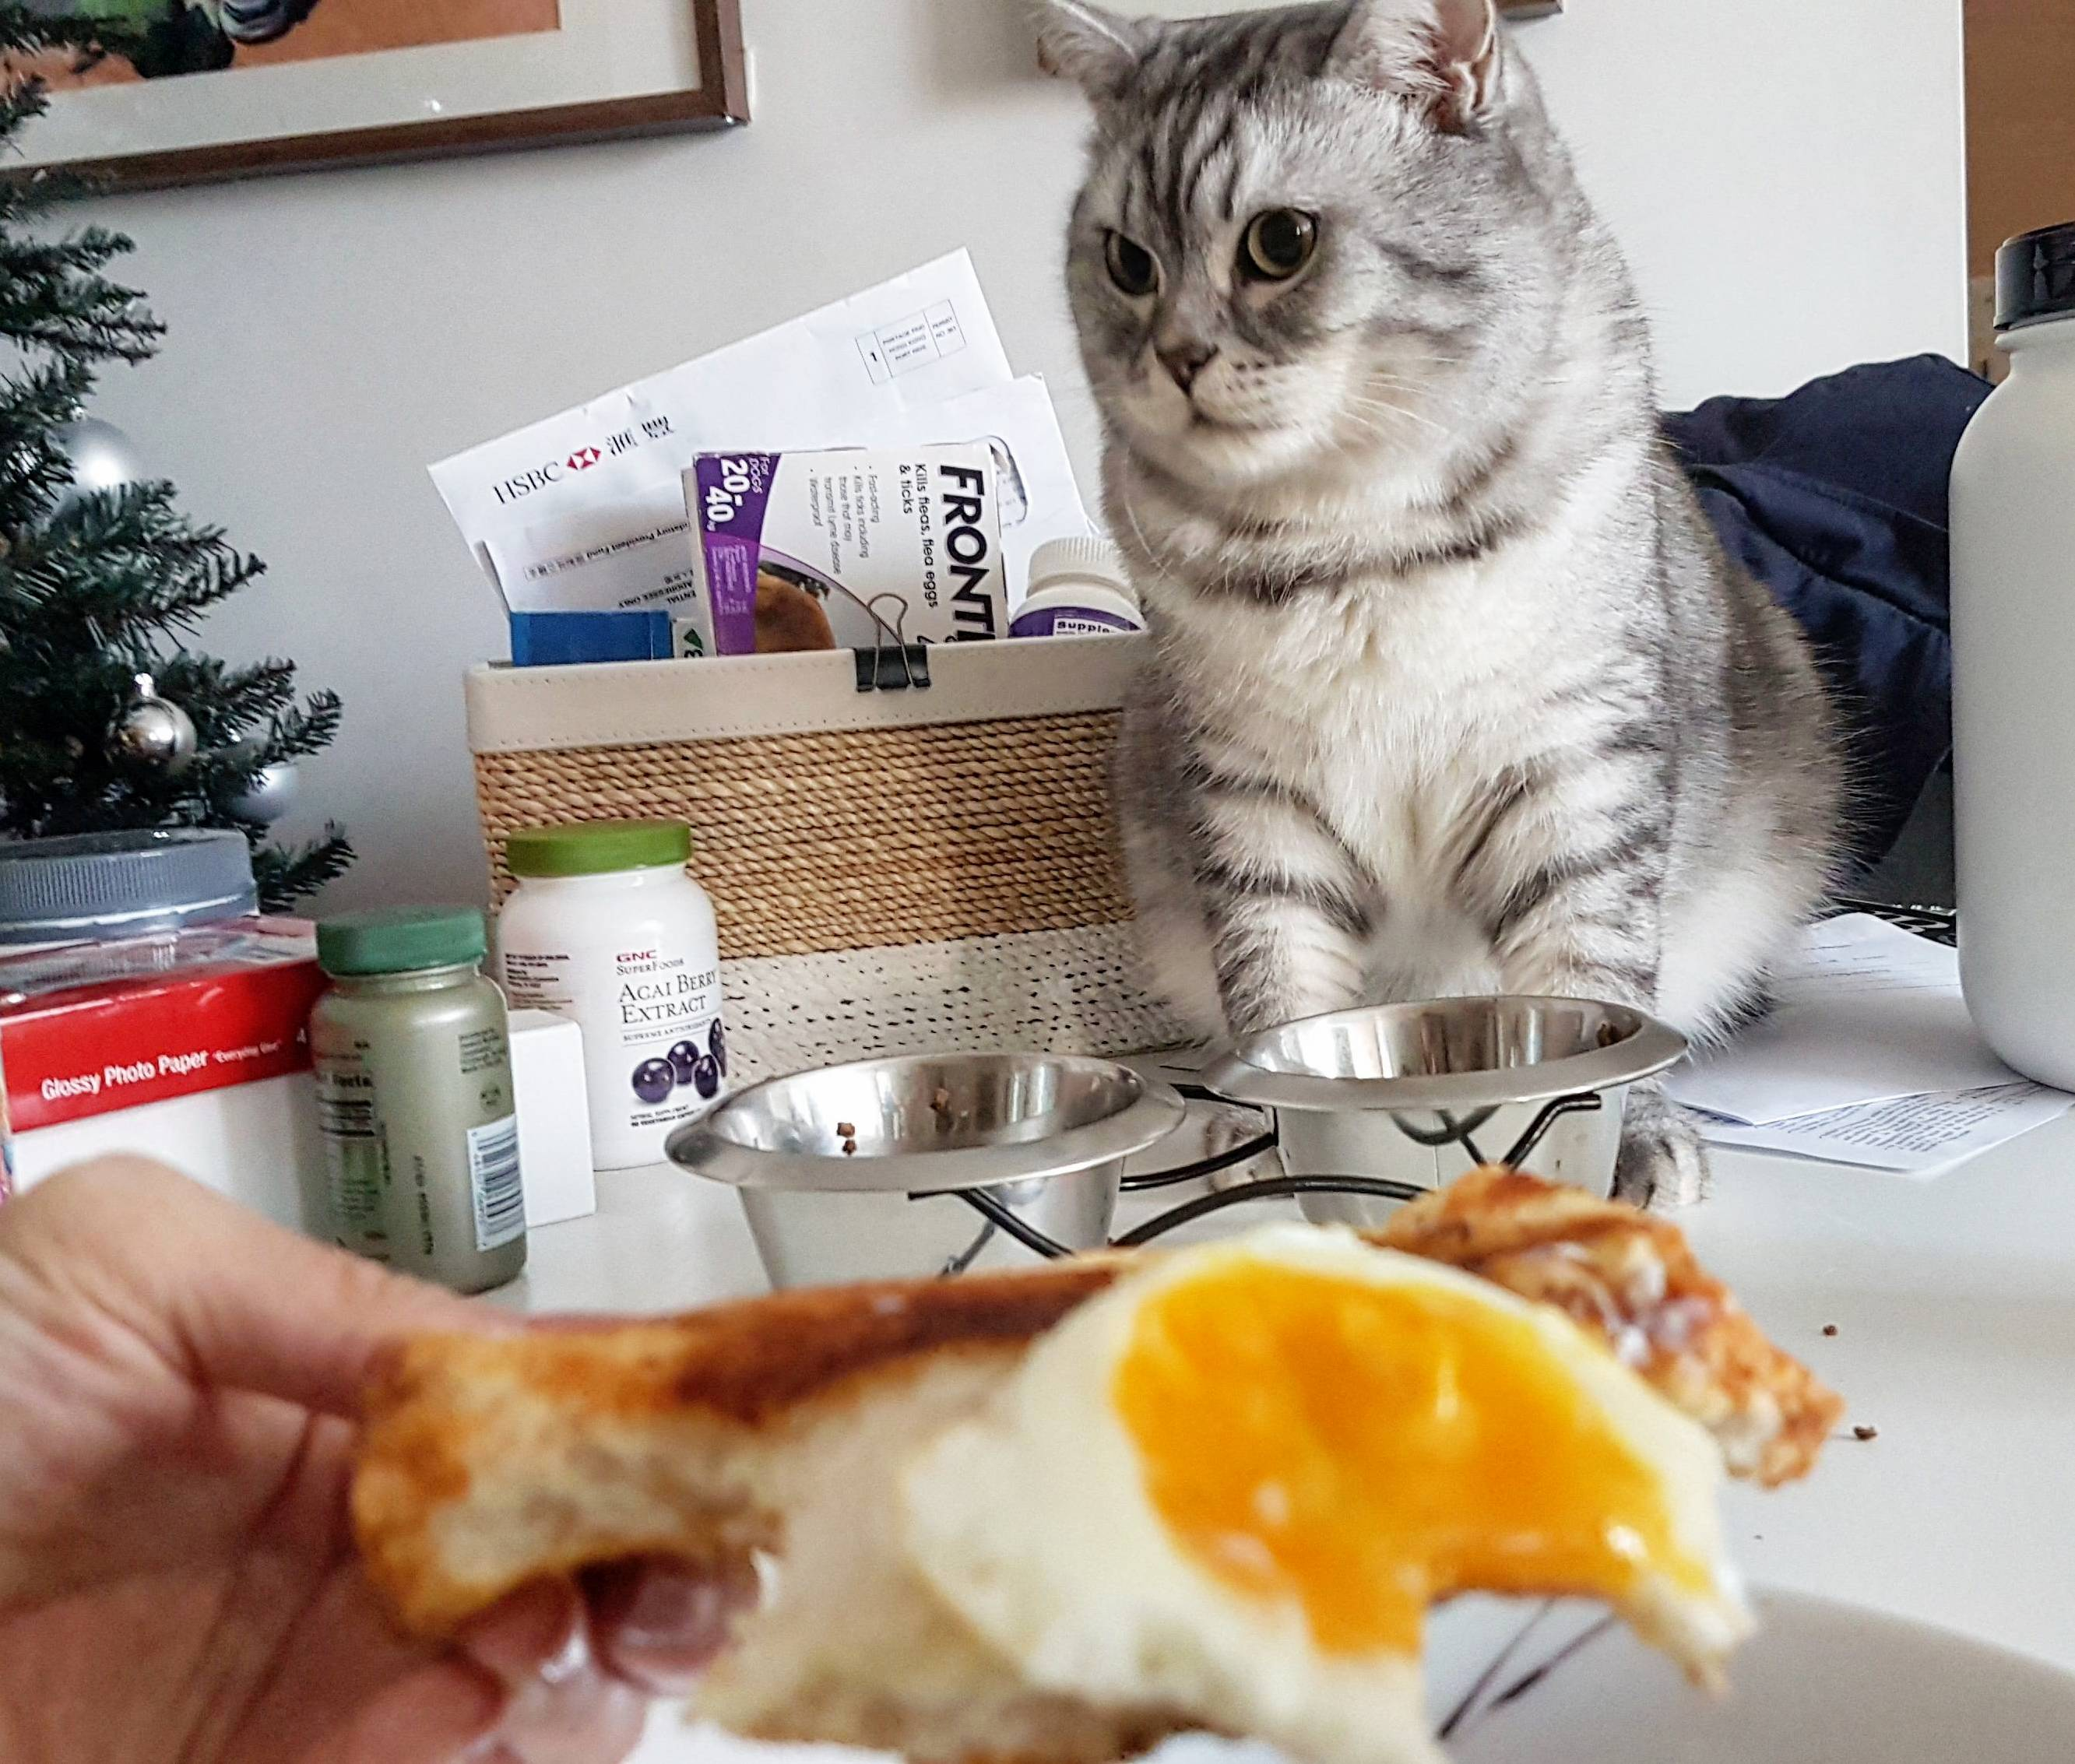 Eating breakfast with waffles